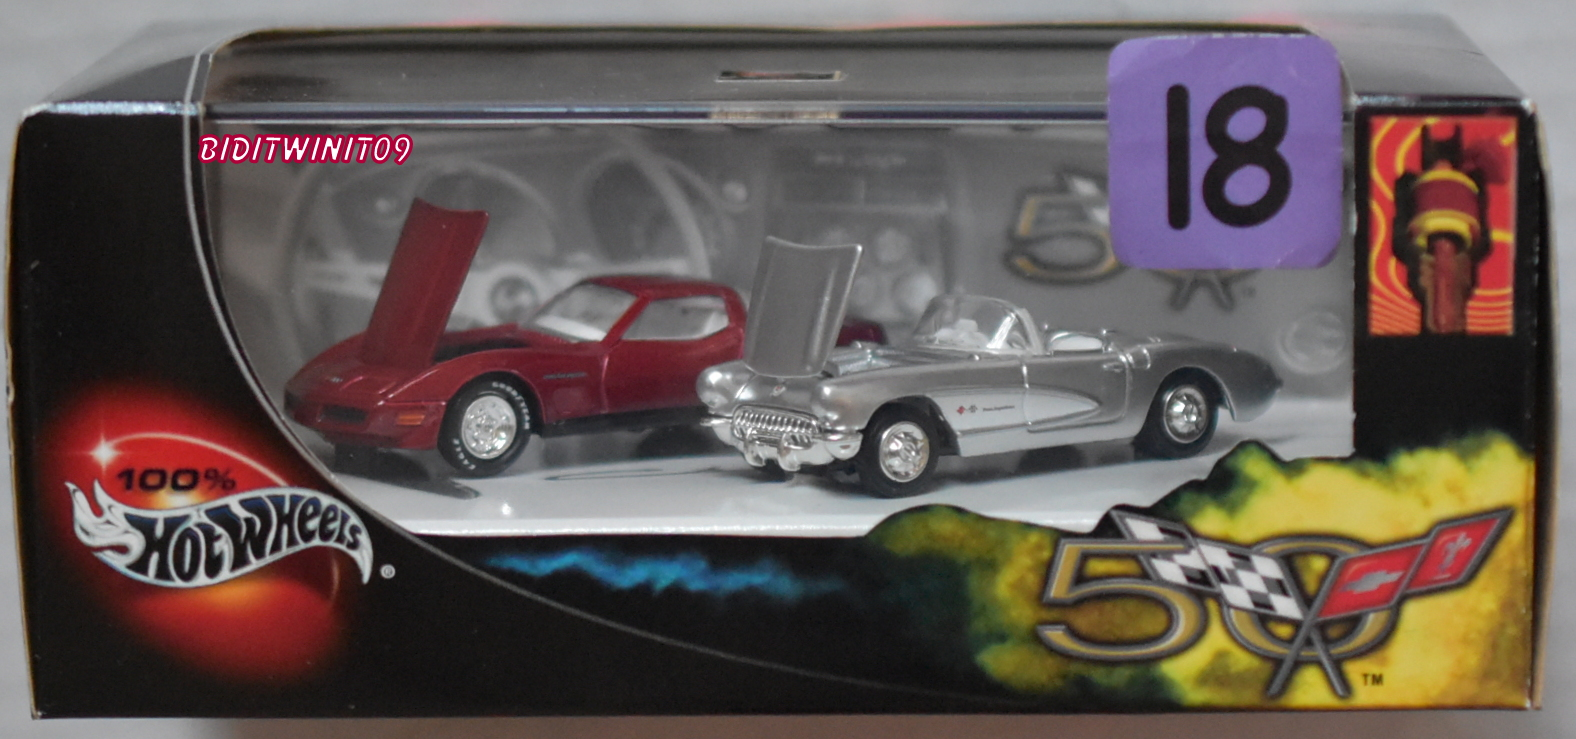 100% HOT WHEELS 50 YEARS CORVETTE LIMITED EDITION 2 CAR PACK E+